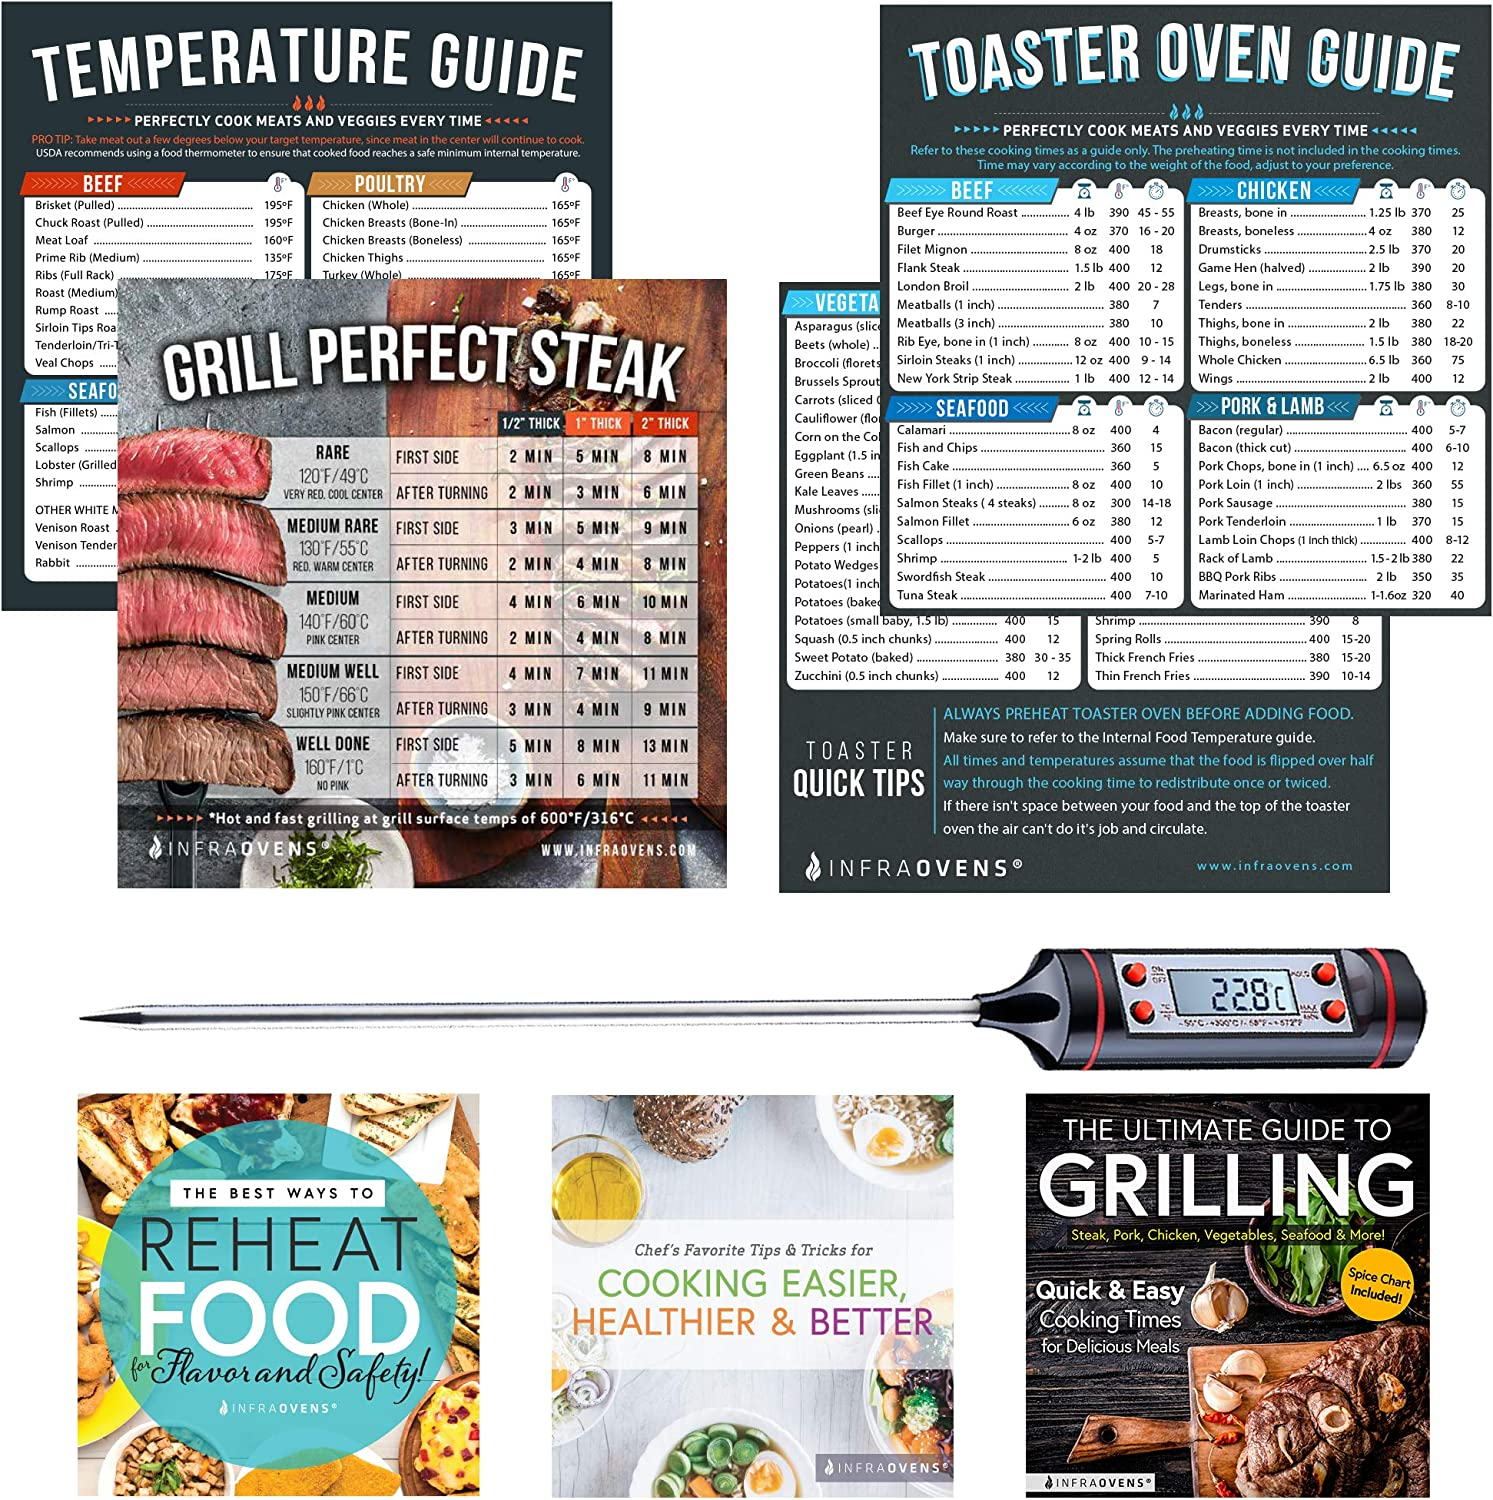 Toaster Ovens Countertop Magnetic Cheat Sheet Accessories Compatible with Cuisinart Air Fryer Toaster Oven, Breville, Emeril Air Fryer 360 Oven XL – Baking Accessories with Meat Thermometer